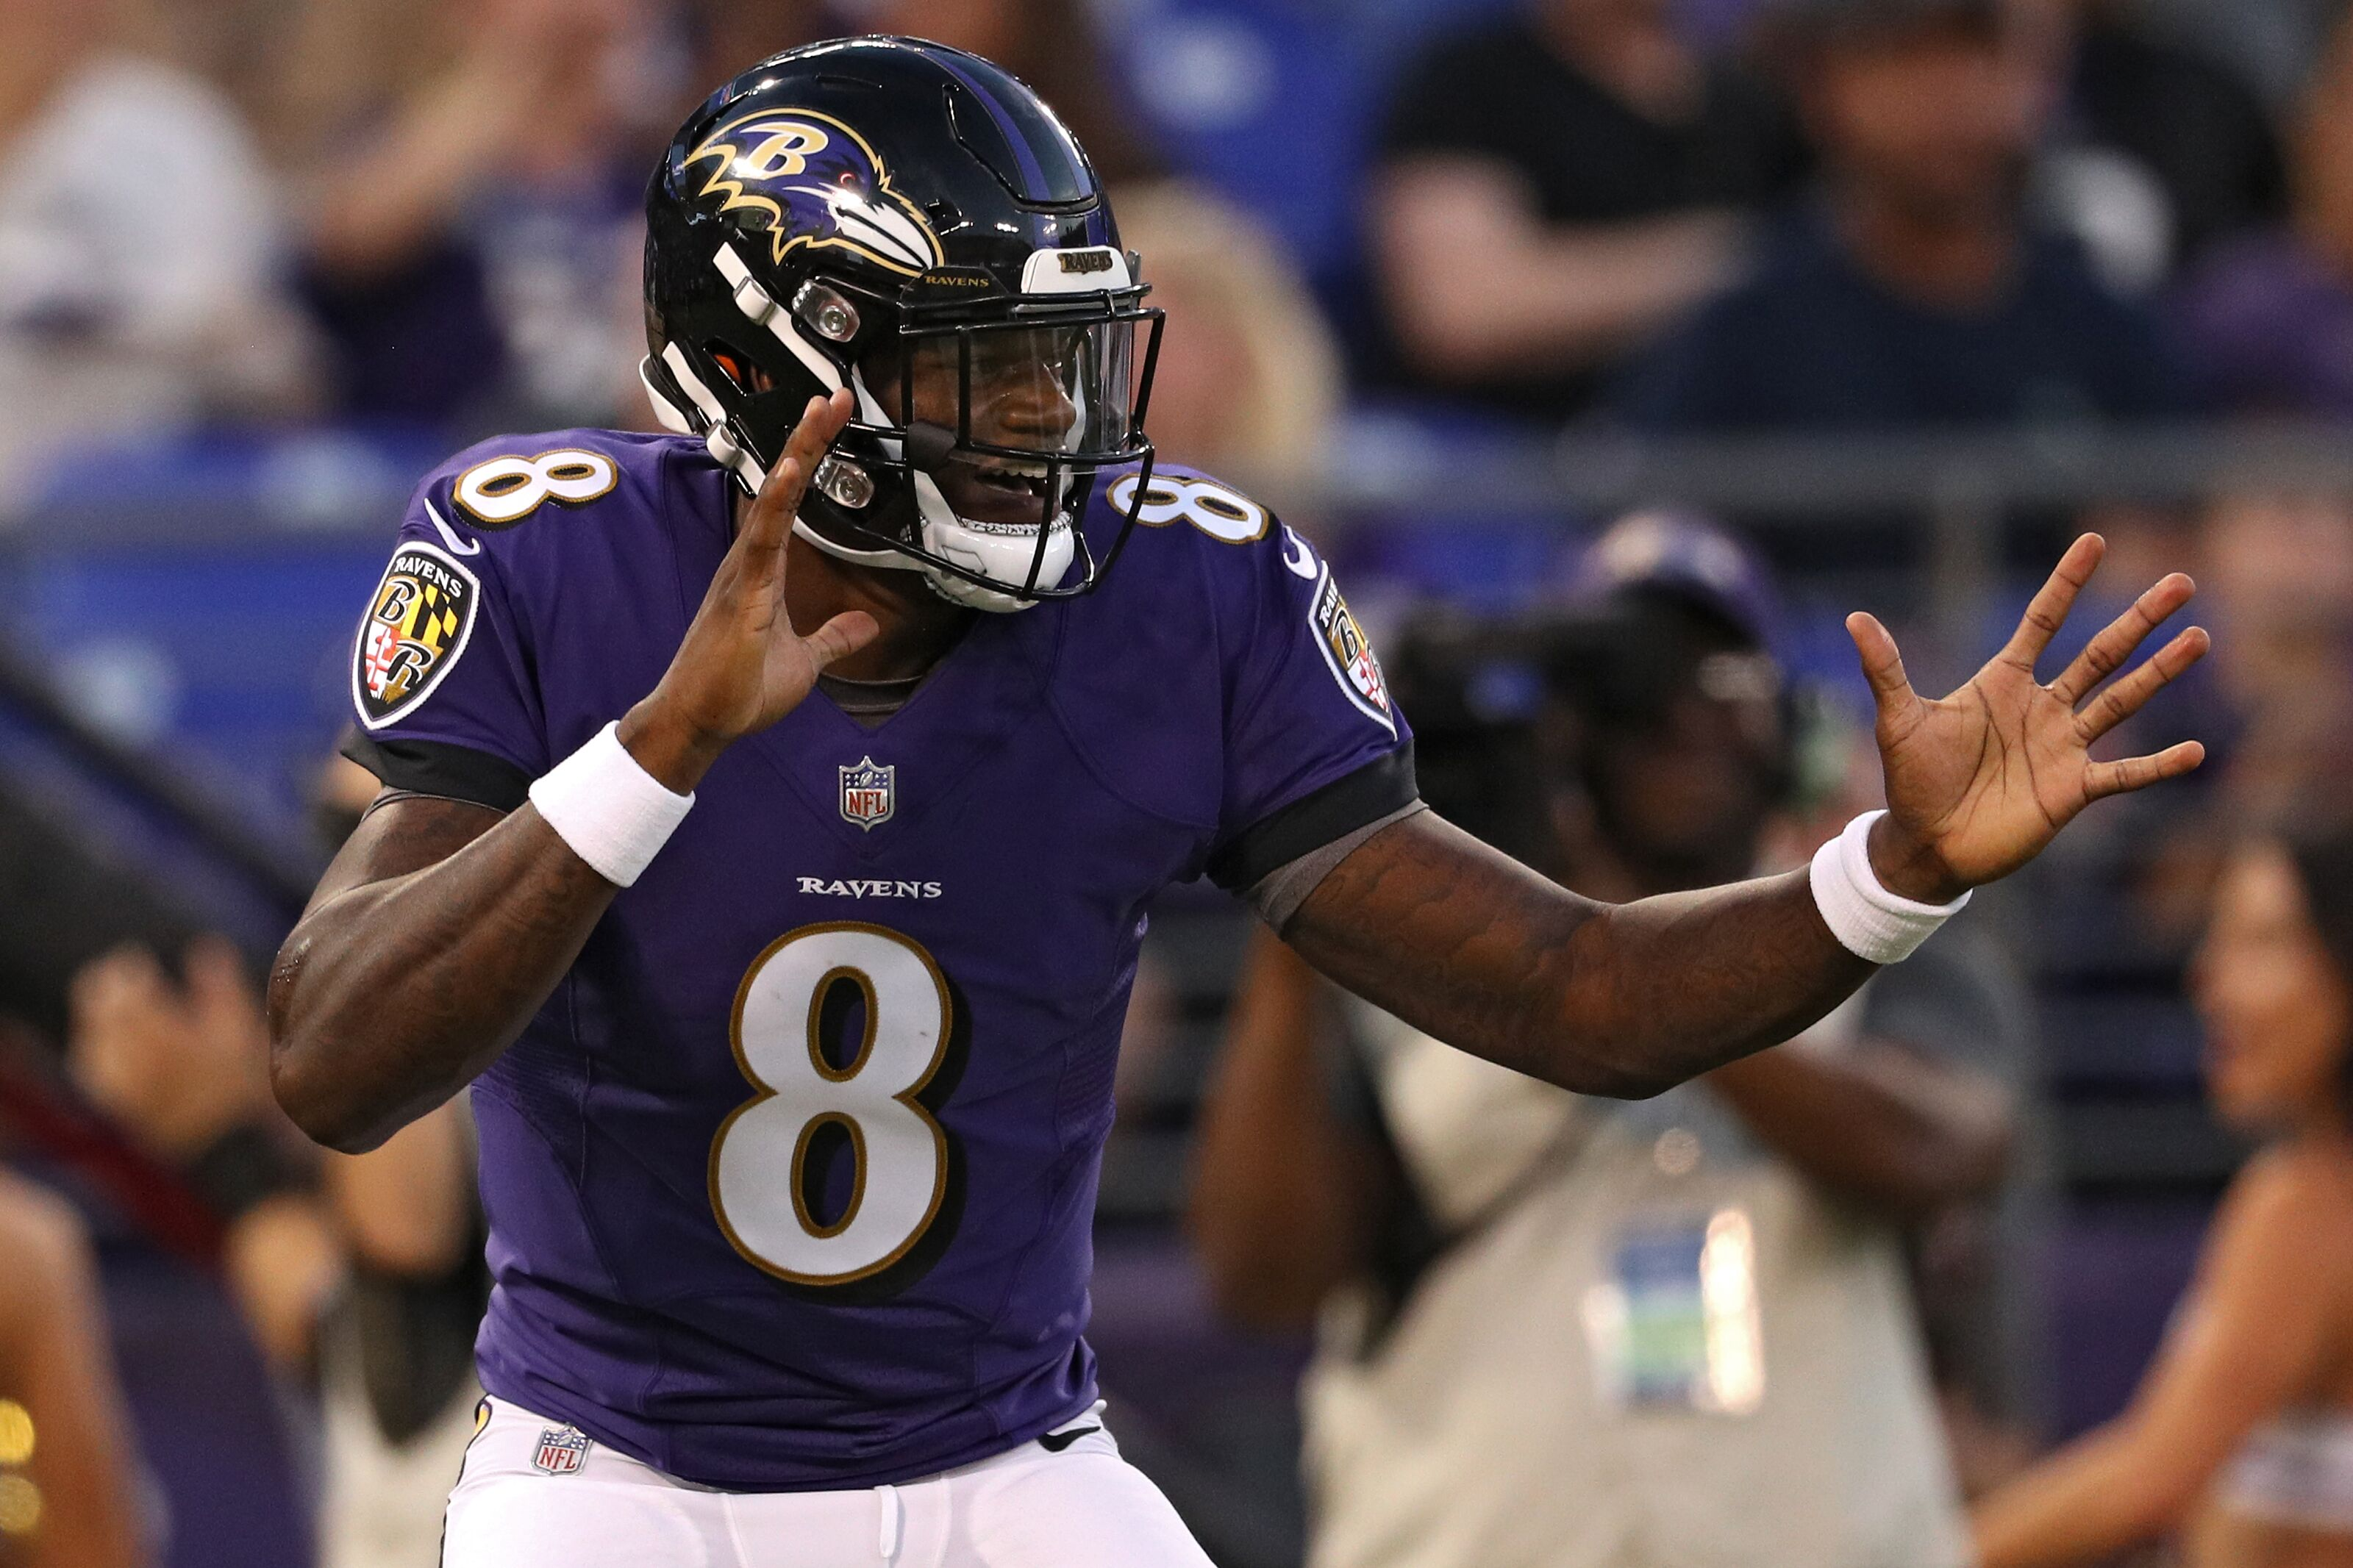 b01771cbdc82 Lamar Jackson has even more potential than Mike Vick did